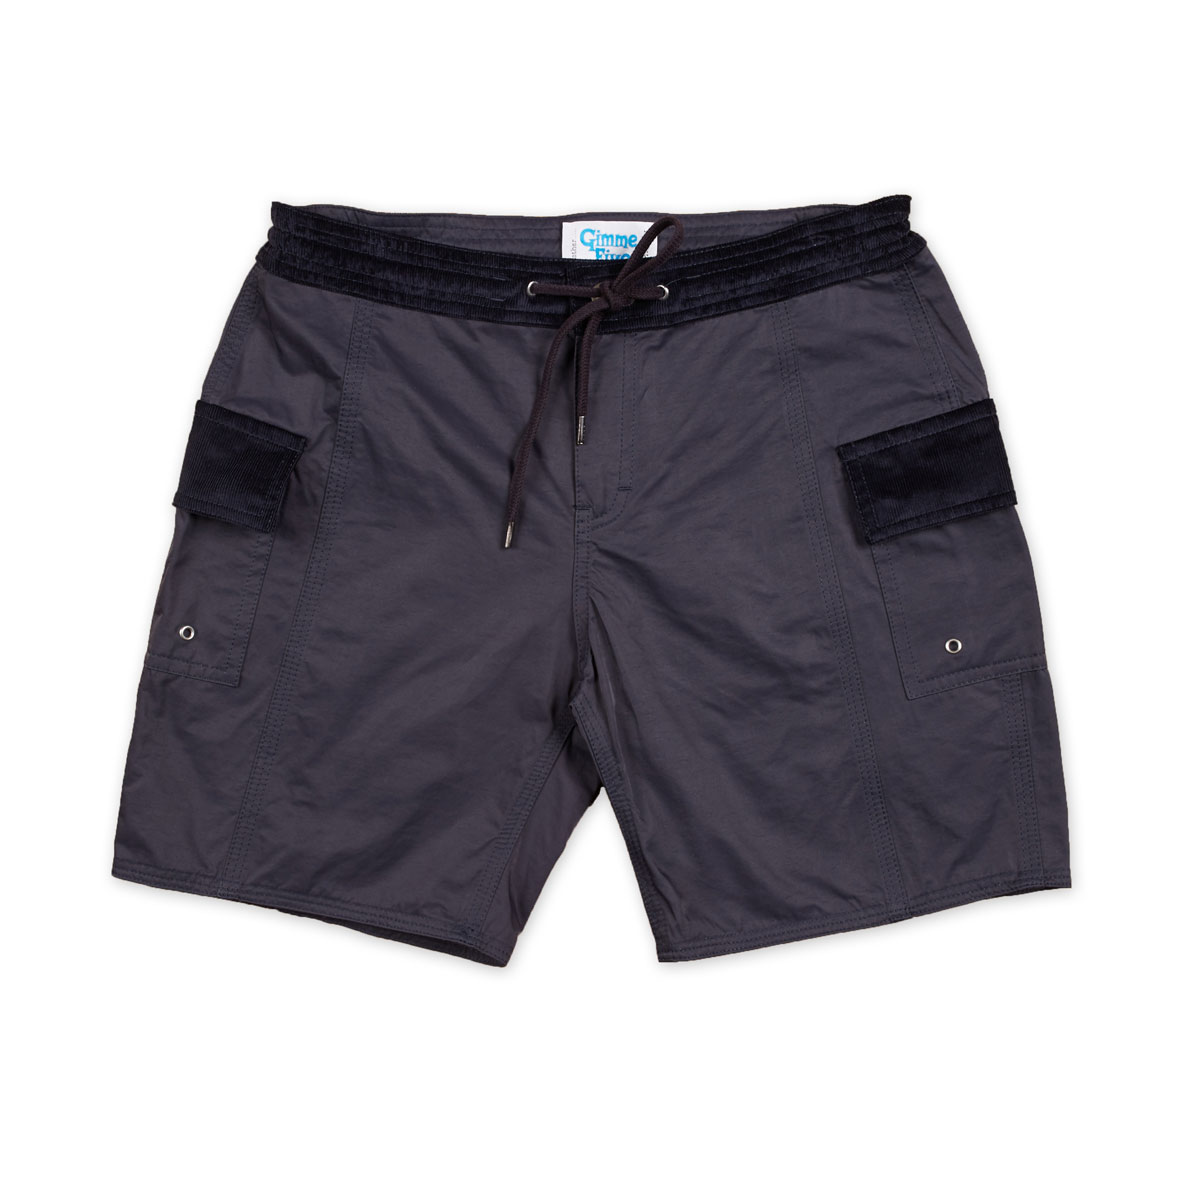 G5-Blue-Nylon-Short-Front.jpg